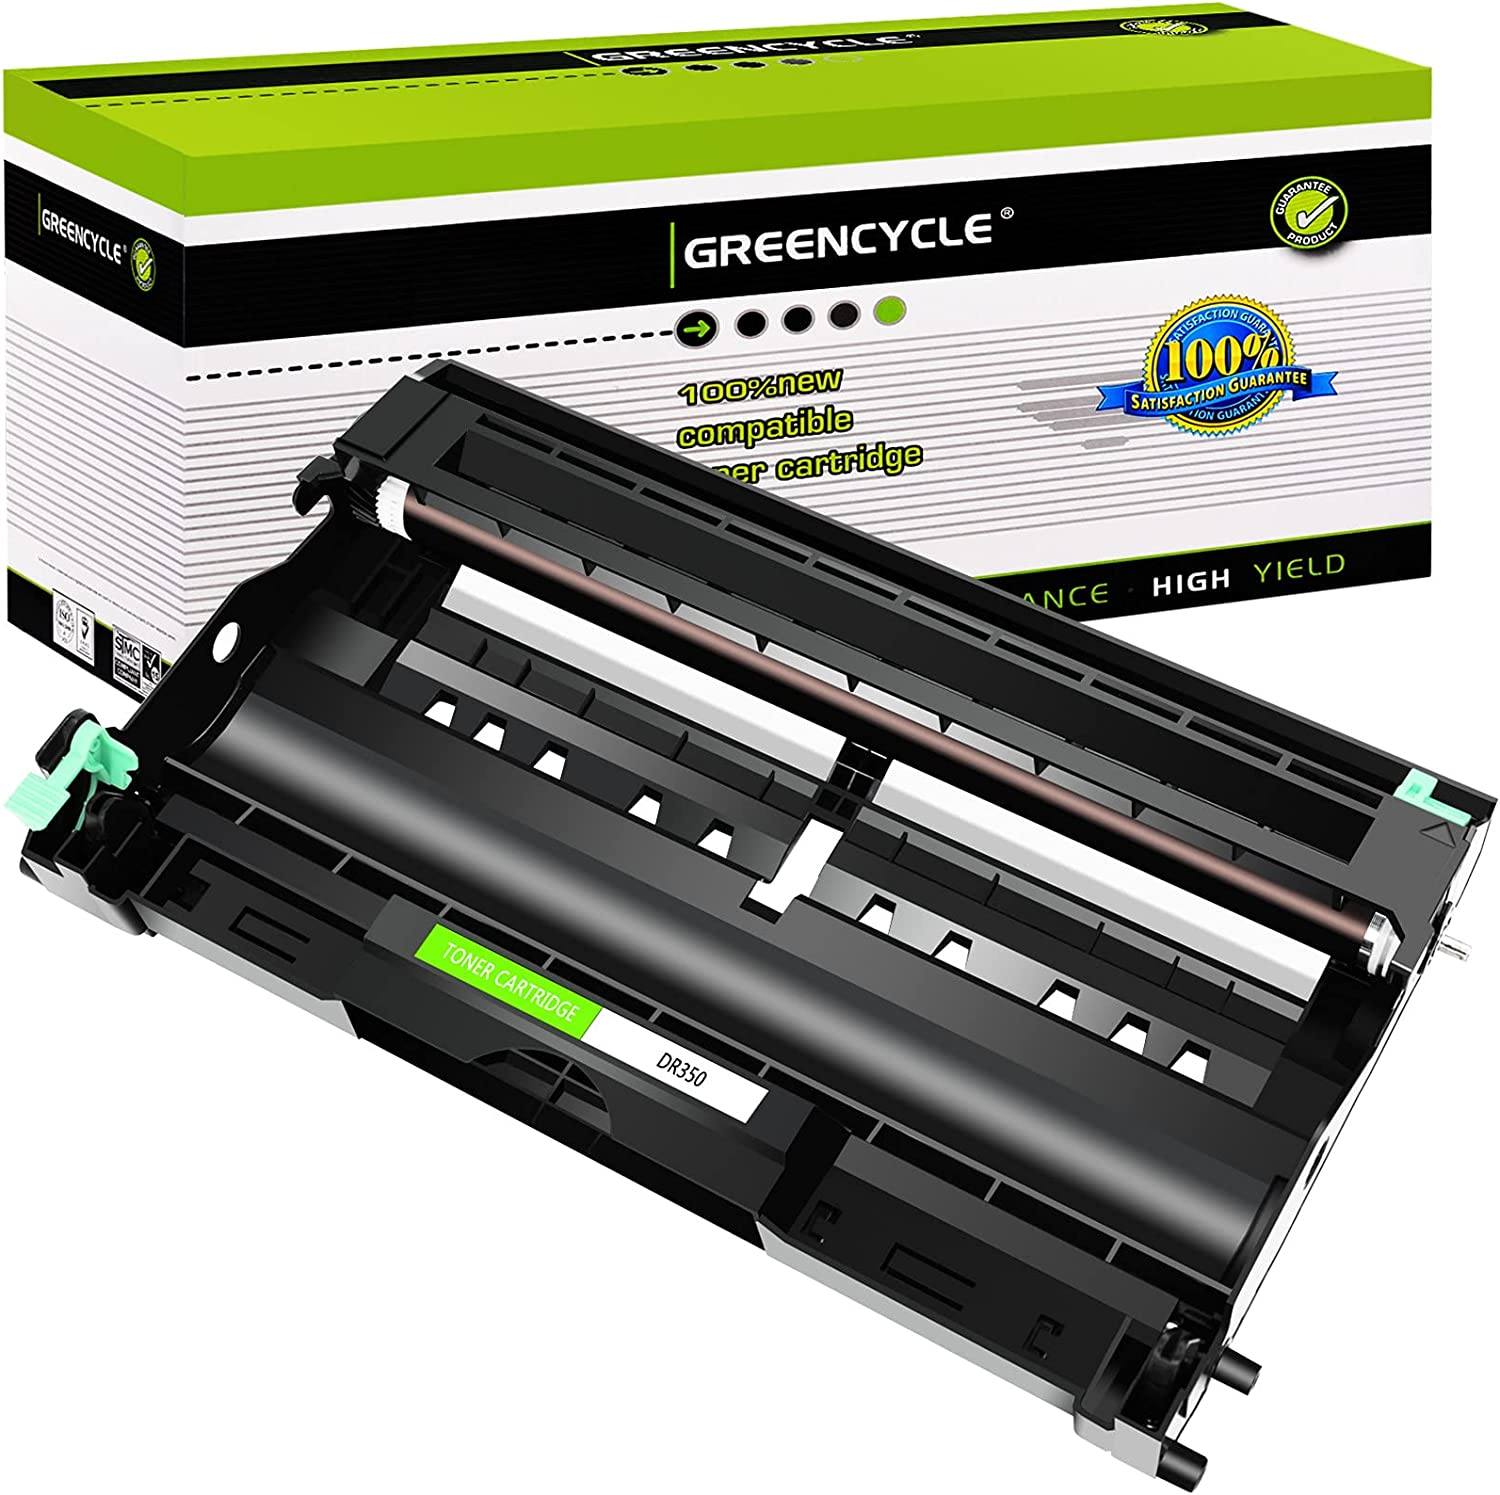 GREENCYCLE 1 Pack Replacement for Brother Black Compatible Drum Unit DR350 DR-350 for use in DCP-7010 DCP-7020 DCP-7025 HL-2030 HL-2040 Intellifax 2820 2850 2920 & MFC-7220 MFC-7420 MFC-7820D Printer